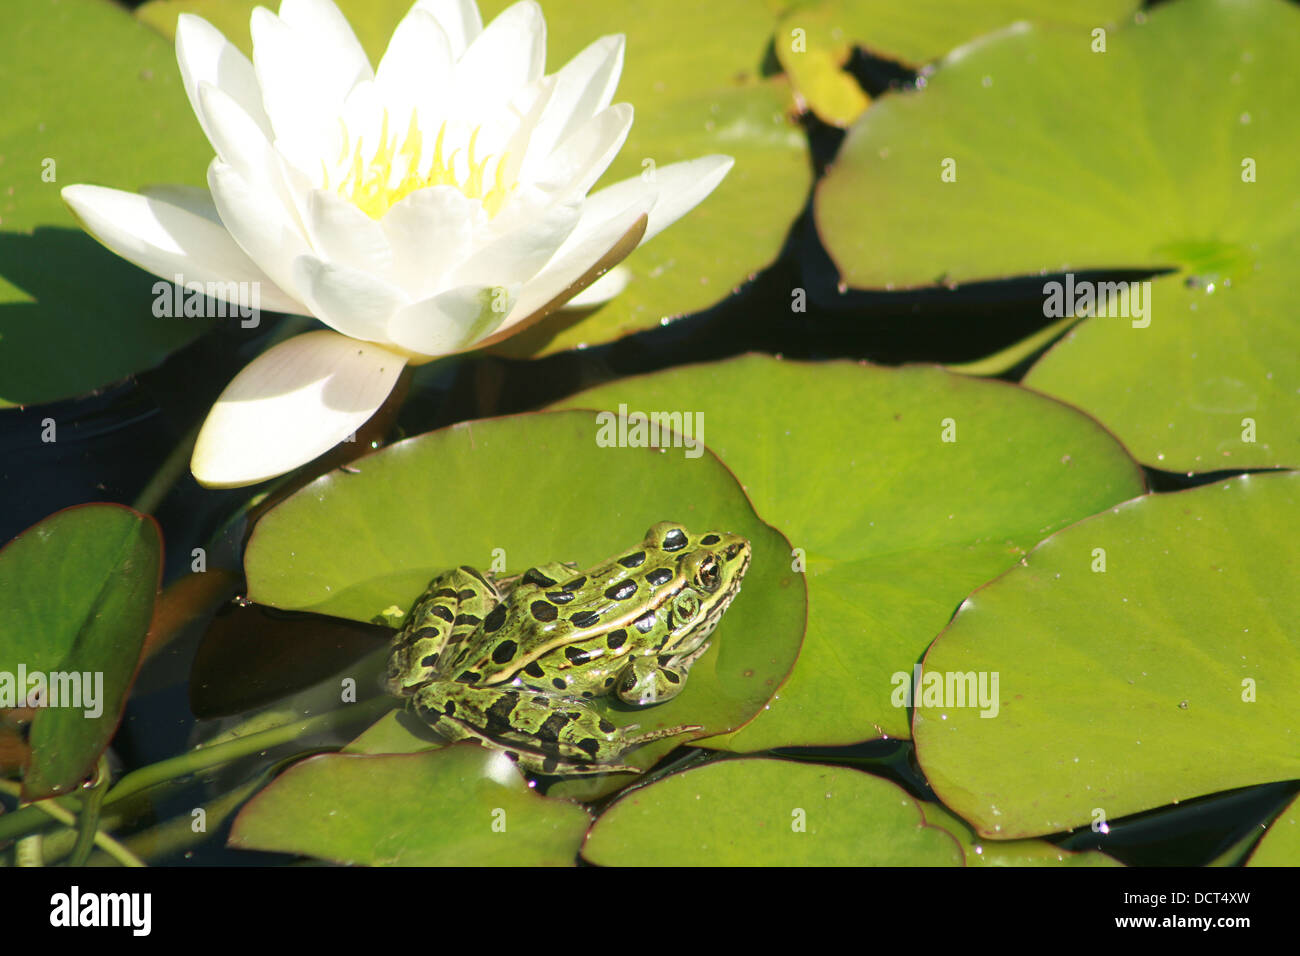 A Green Frog With Black Spots On A Lily Pad Next To A